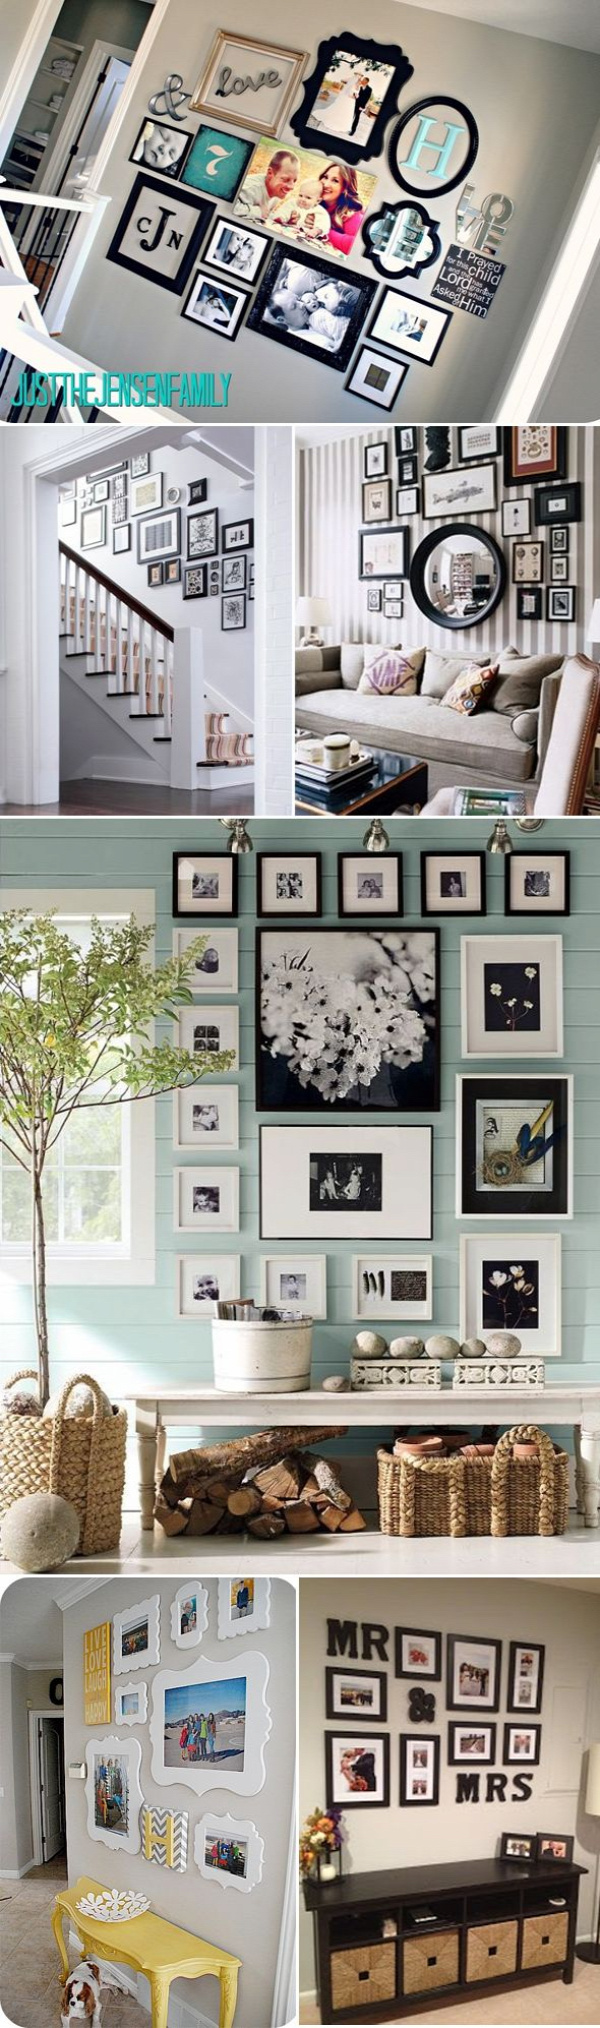 family photos gallery wall ideas